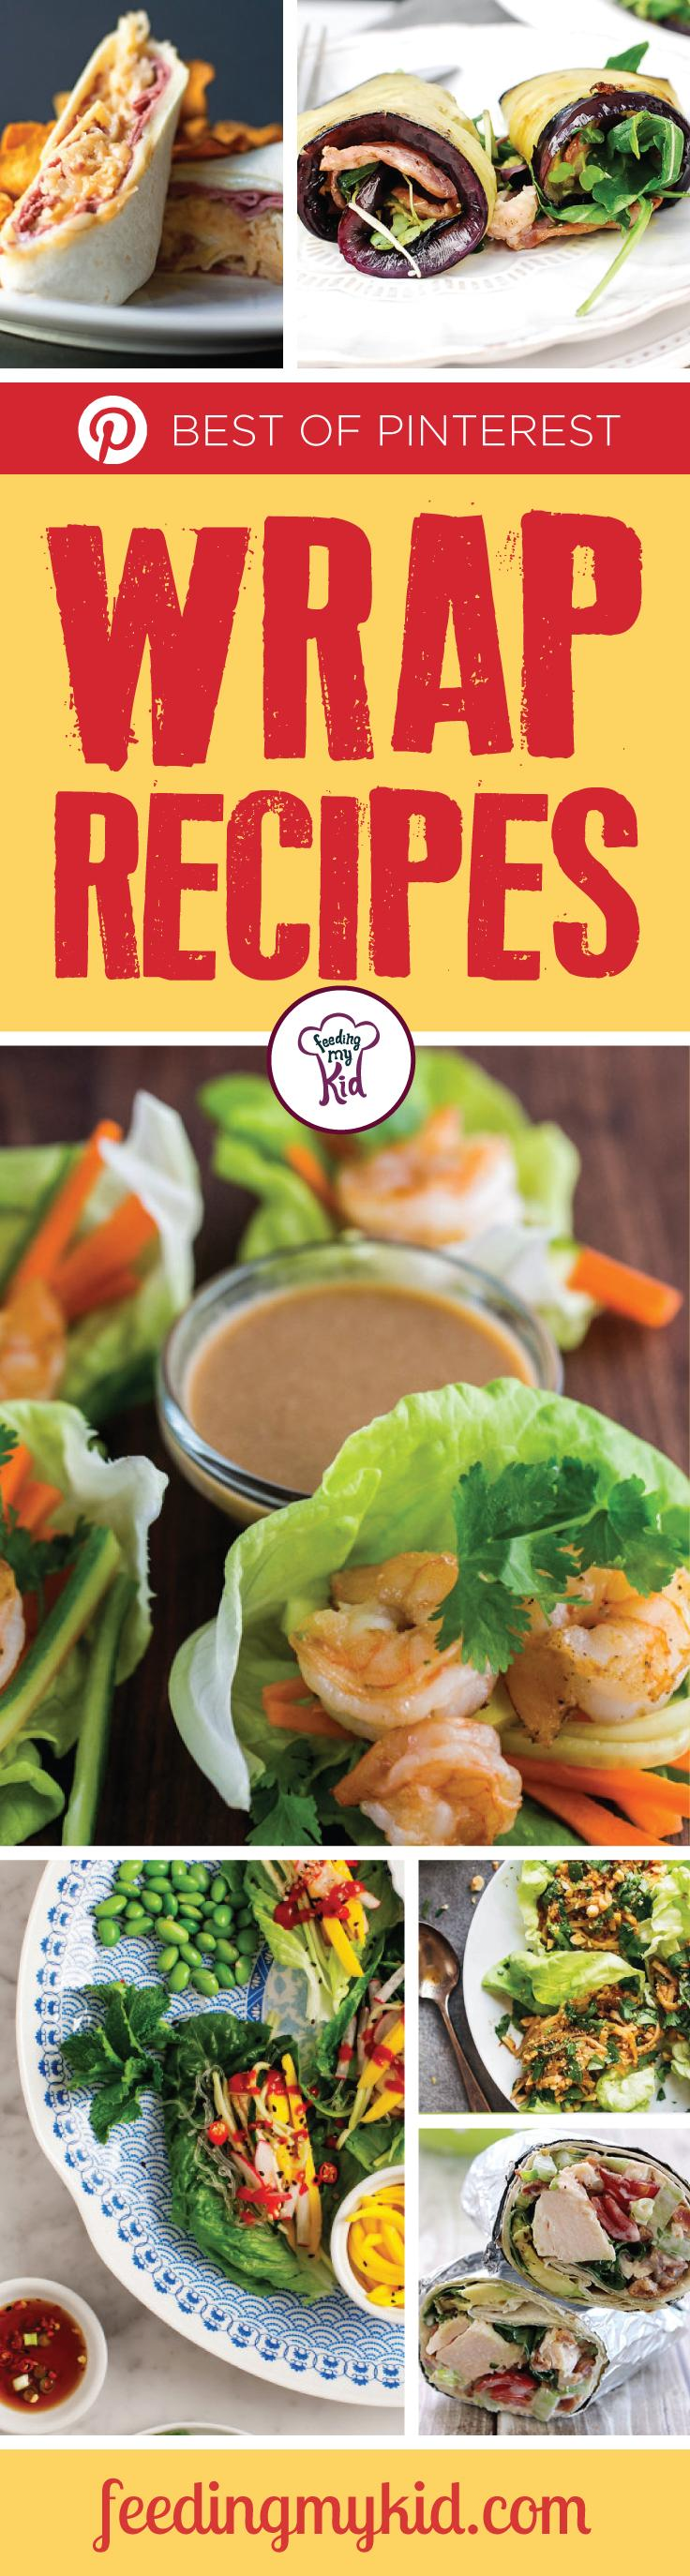 The Best of Pinterest Wrap Recipes - This is a must share! Wraps make a great snack or a perfect meal. They're low in carbs, usually high in protein and extremely tasty. Whether a wrap is served with fries, salad or potato salad; they make for a great meal! From a bacon lettuce avocado tomato chicken salad wrap to a roasted vegetable humus wrap; these are perfect to eat! #fmk #recipes